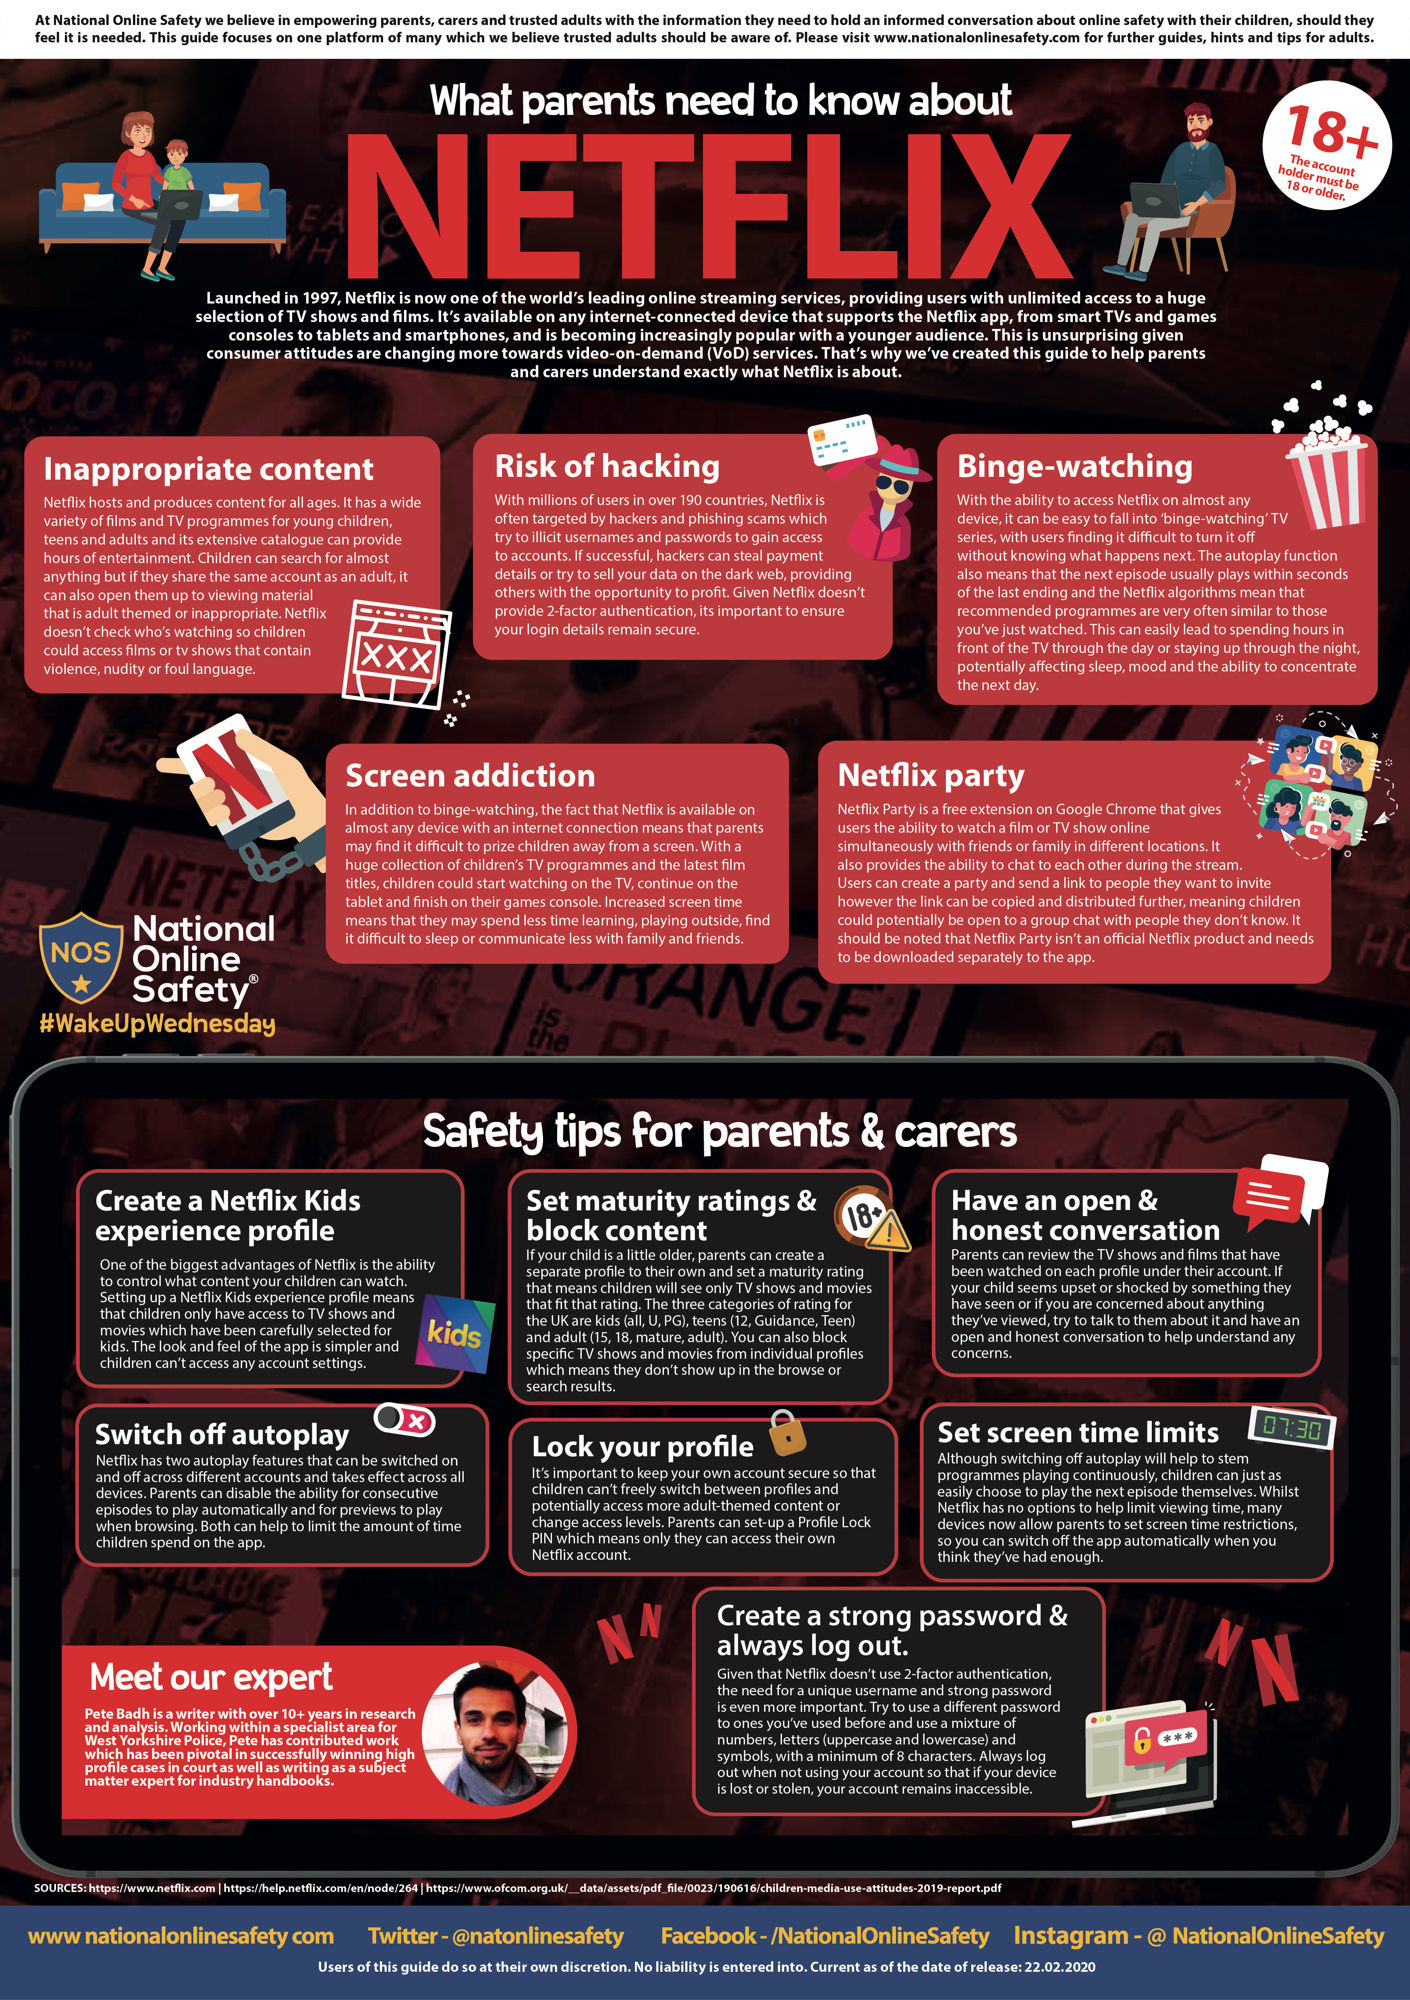 What parents need to know about Netflix